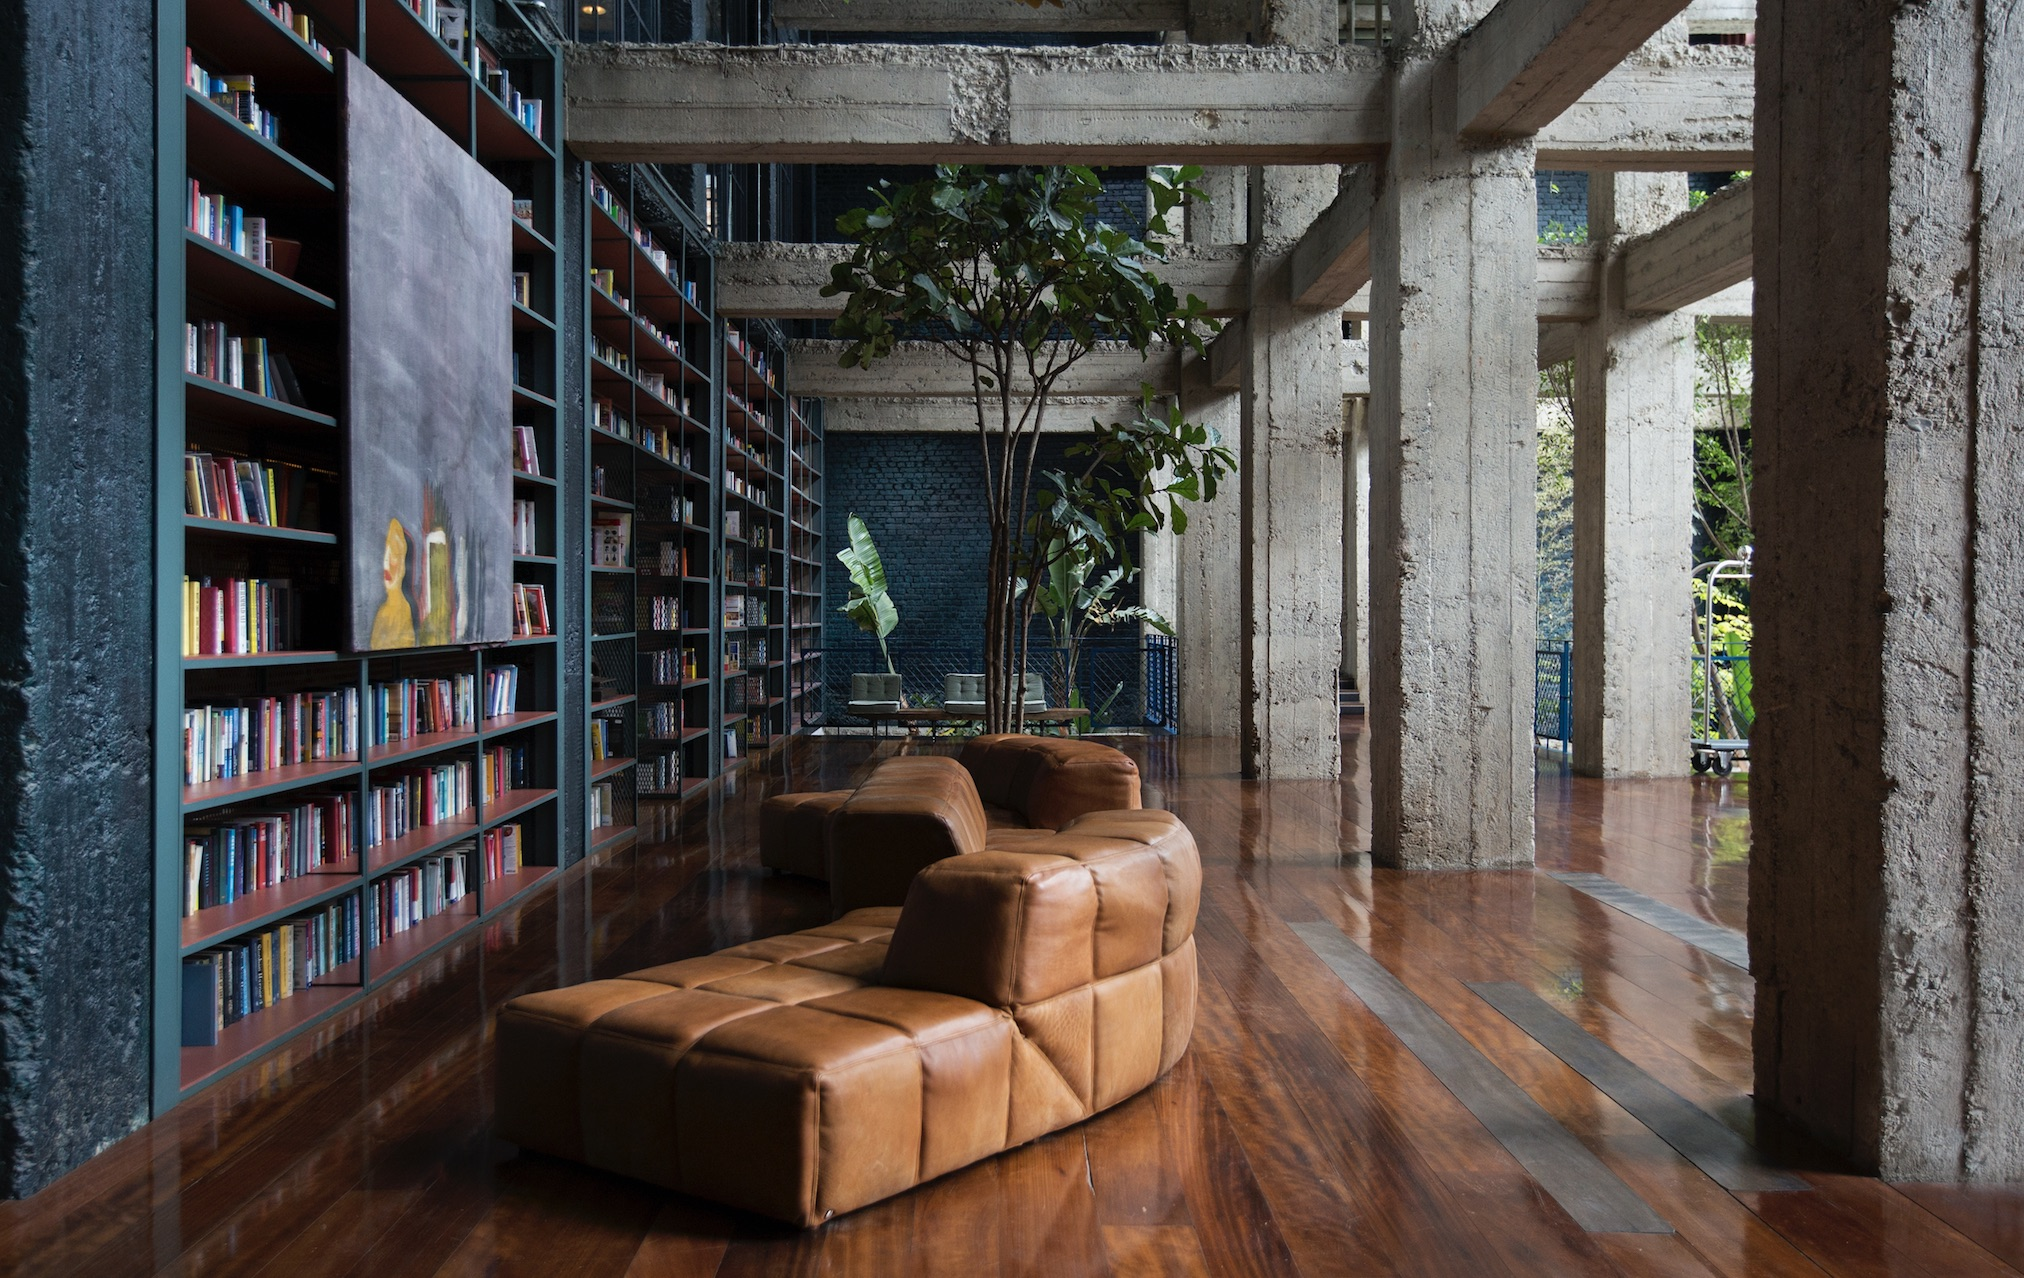 Stay at Tbilisi's industrial chic hotel-cum-cultural hub set in a former printing house | The Escapist